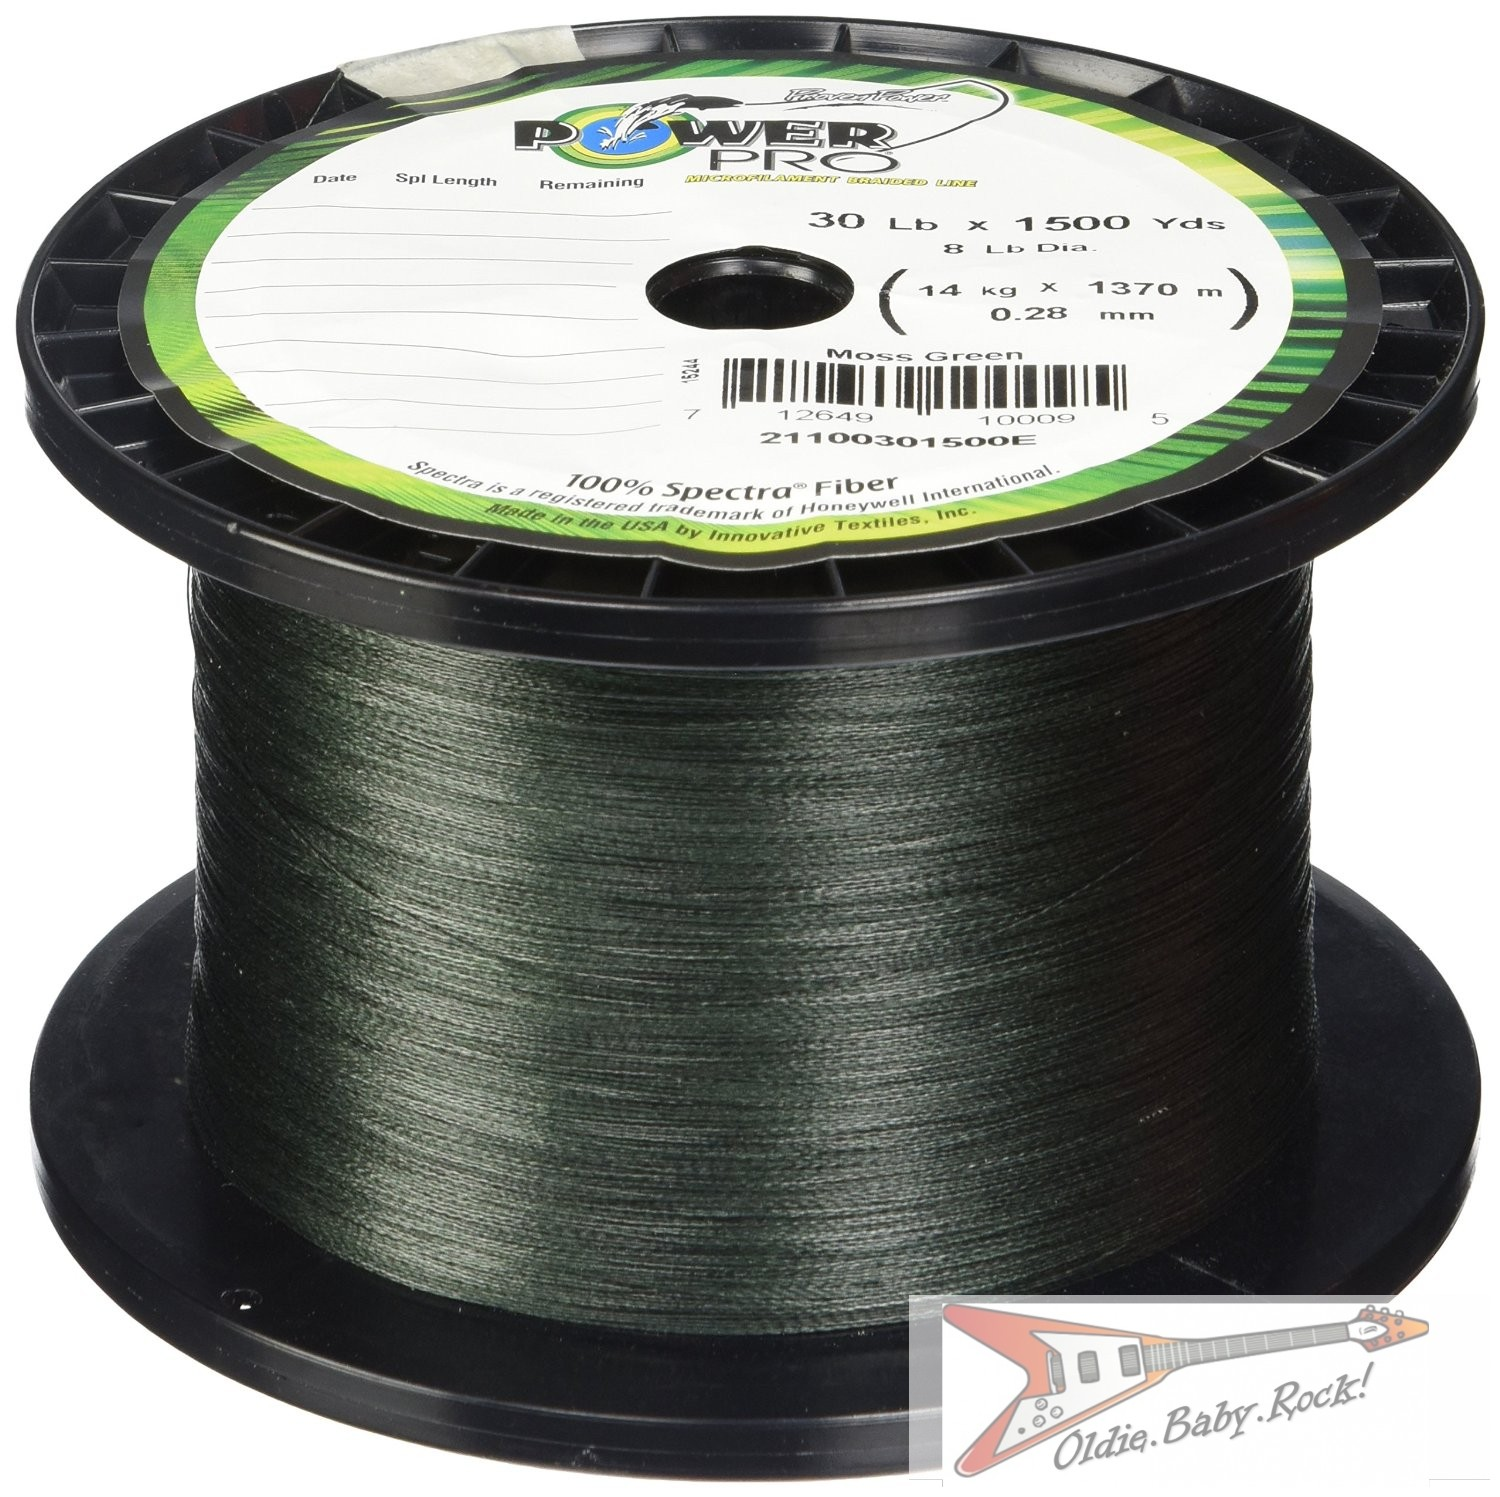 Braided fishing line deals on 1001 blocks for Power pro fishing line